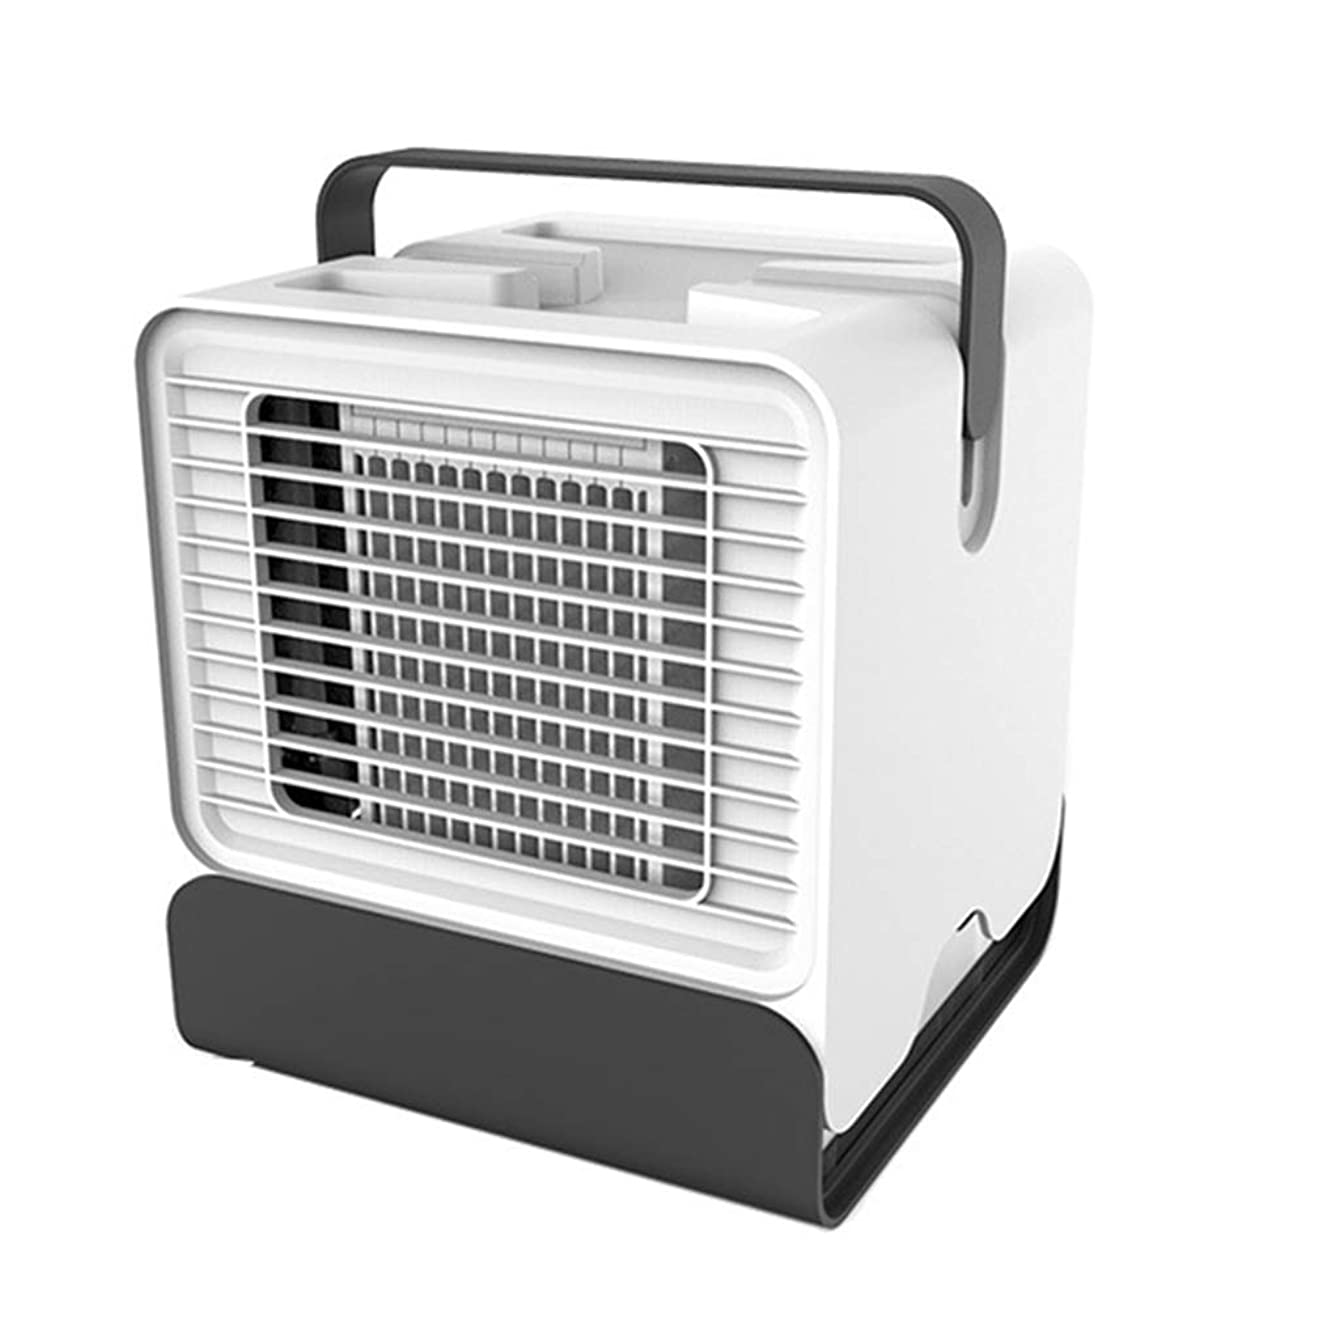 LXT PANDA Air Cooler Fan, USB Desktop Air Conditioning Fan with 3 Wind Speeds, Compact Evaporative Cooler Air Humidifier with LED Light.